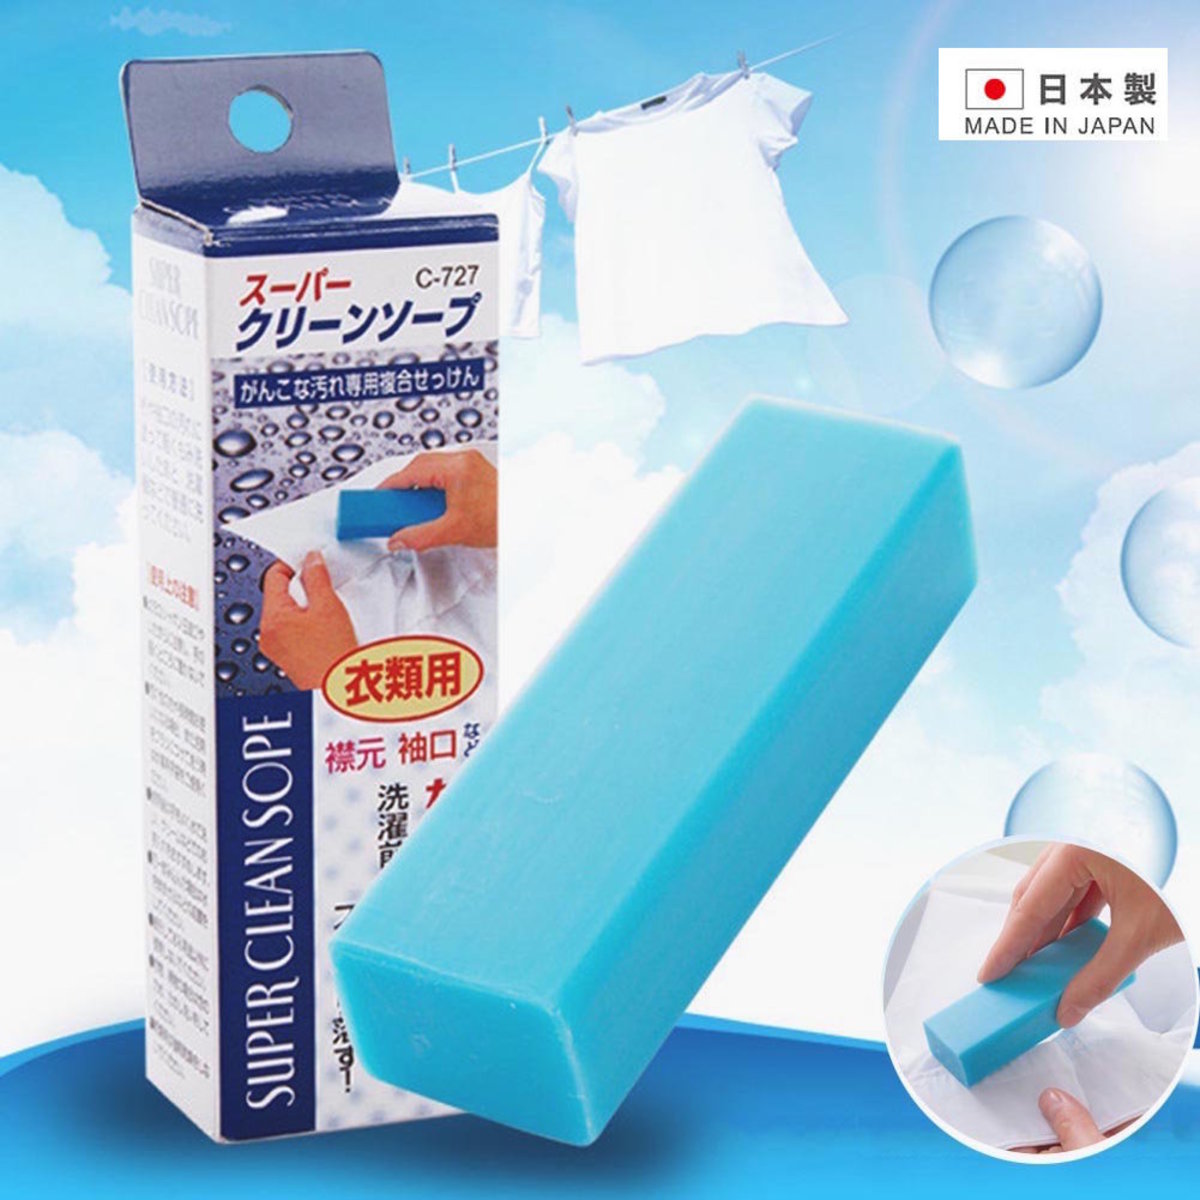 2pcs Super Clean Sope Cleaning Detergent Laundry Bar Soap ( Parallel Imported)